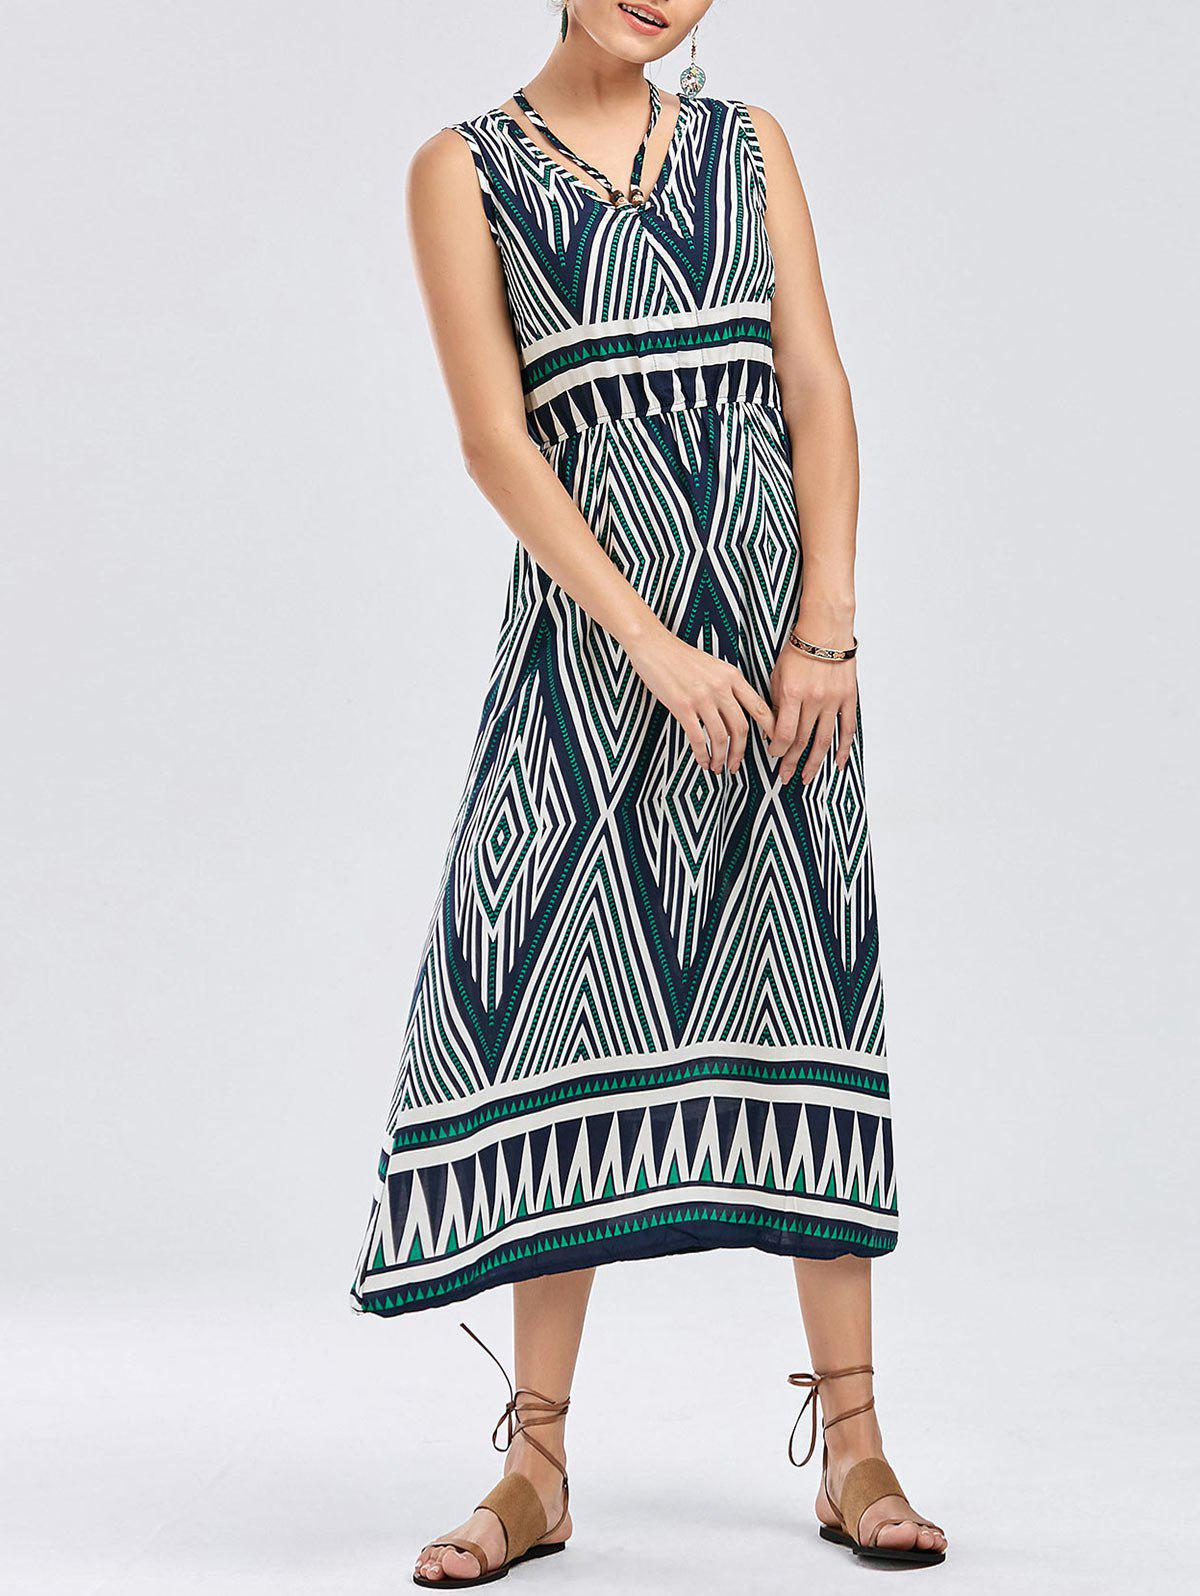 Bohemian Geometric Print Sleeveless Dress - COLORMIX XL